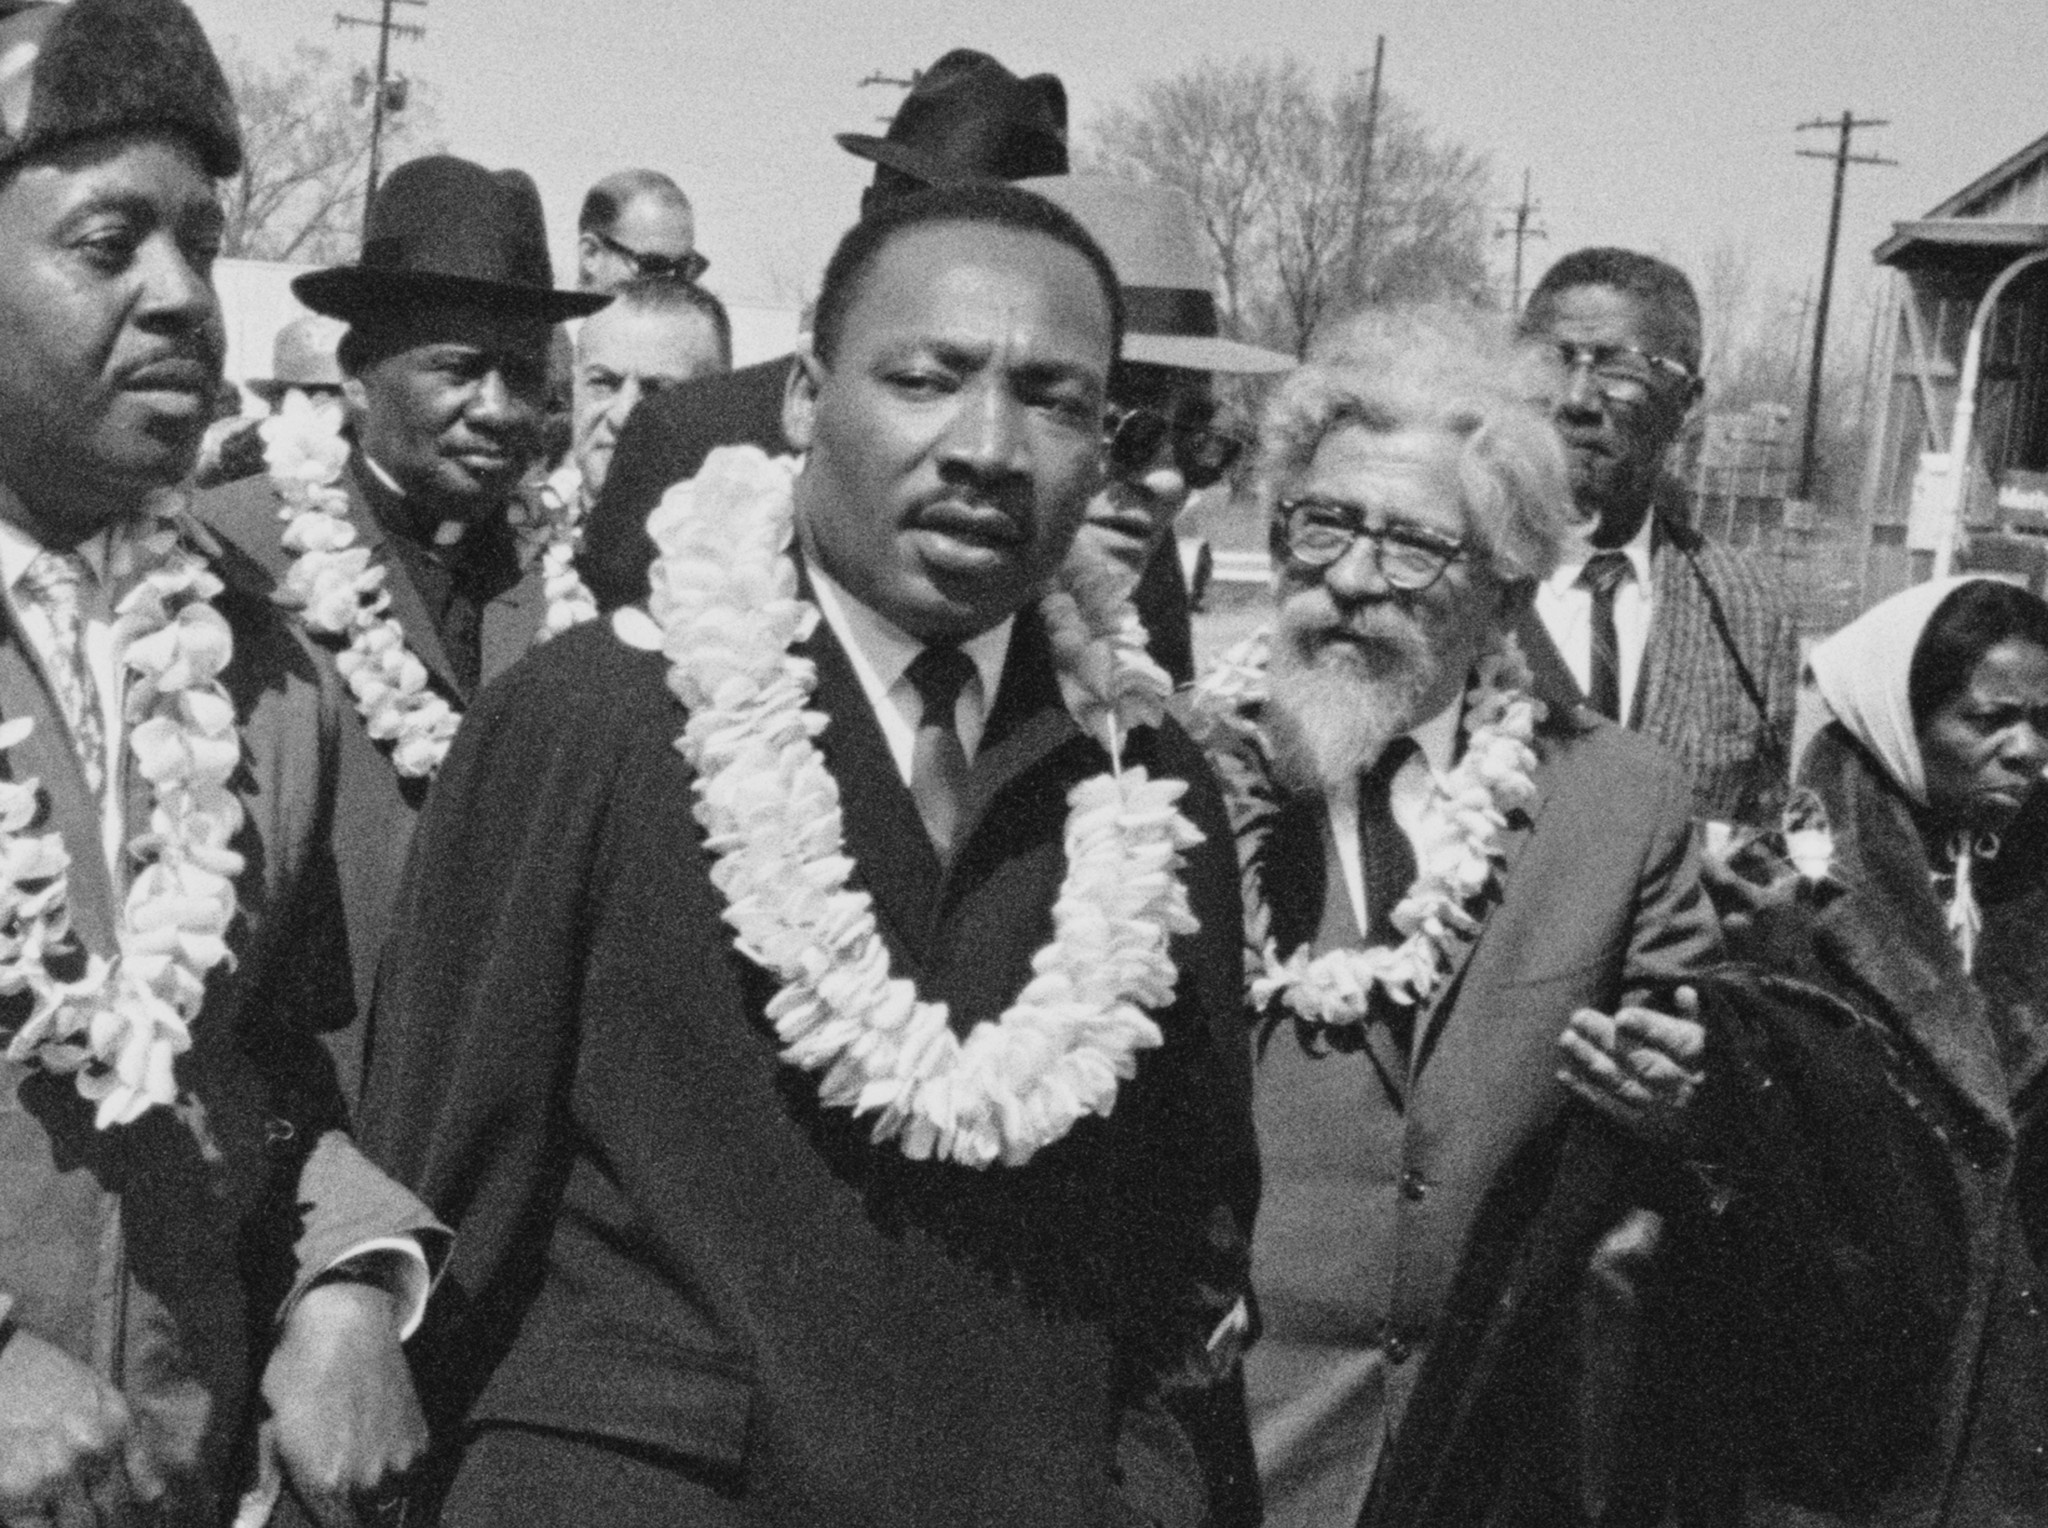 Blacks, Jews and the MLK legacy: Recalling two people's shared history to overcome the tensions of today